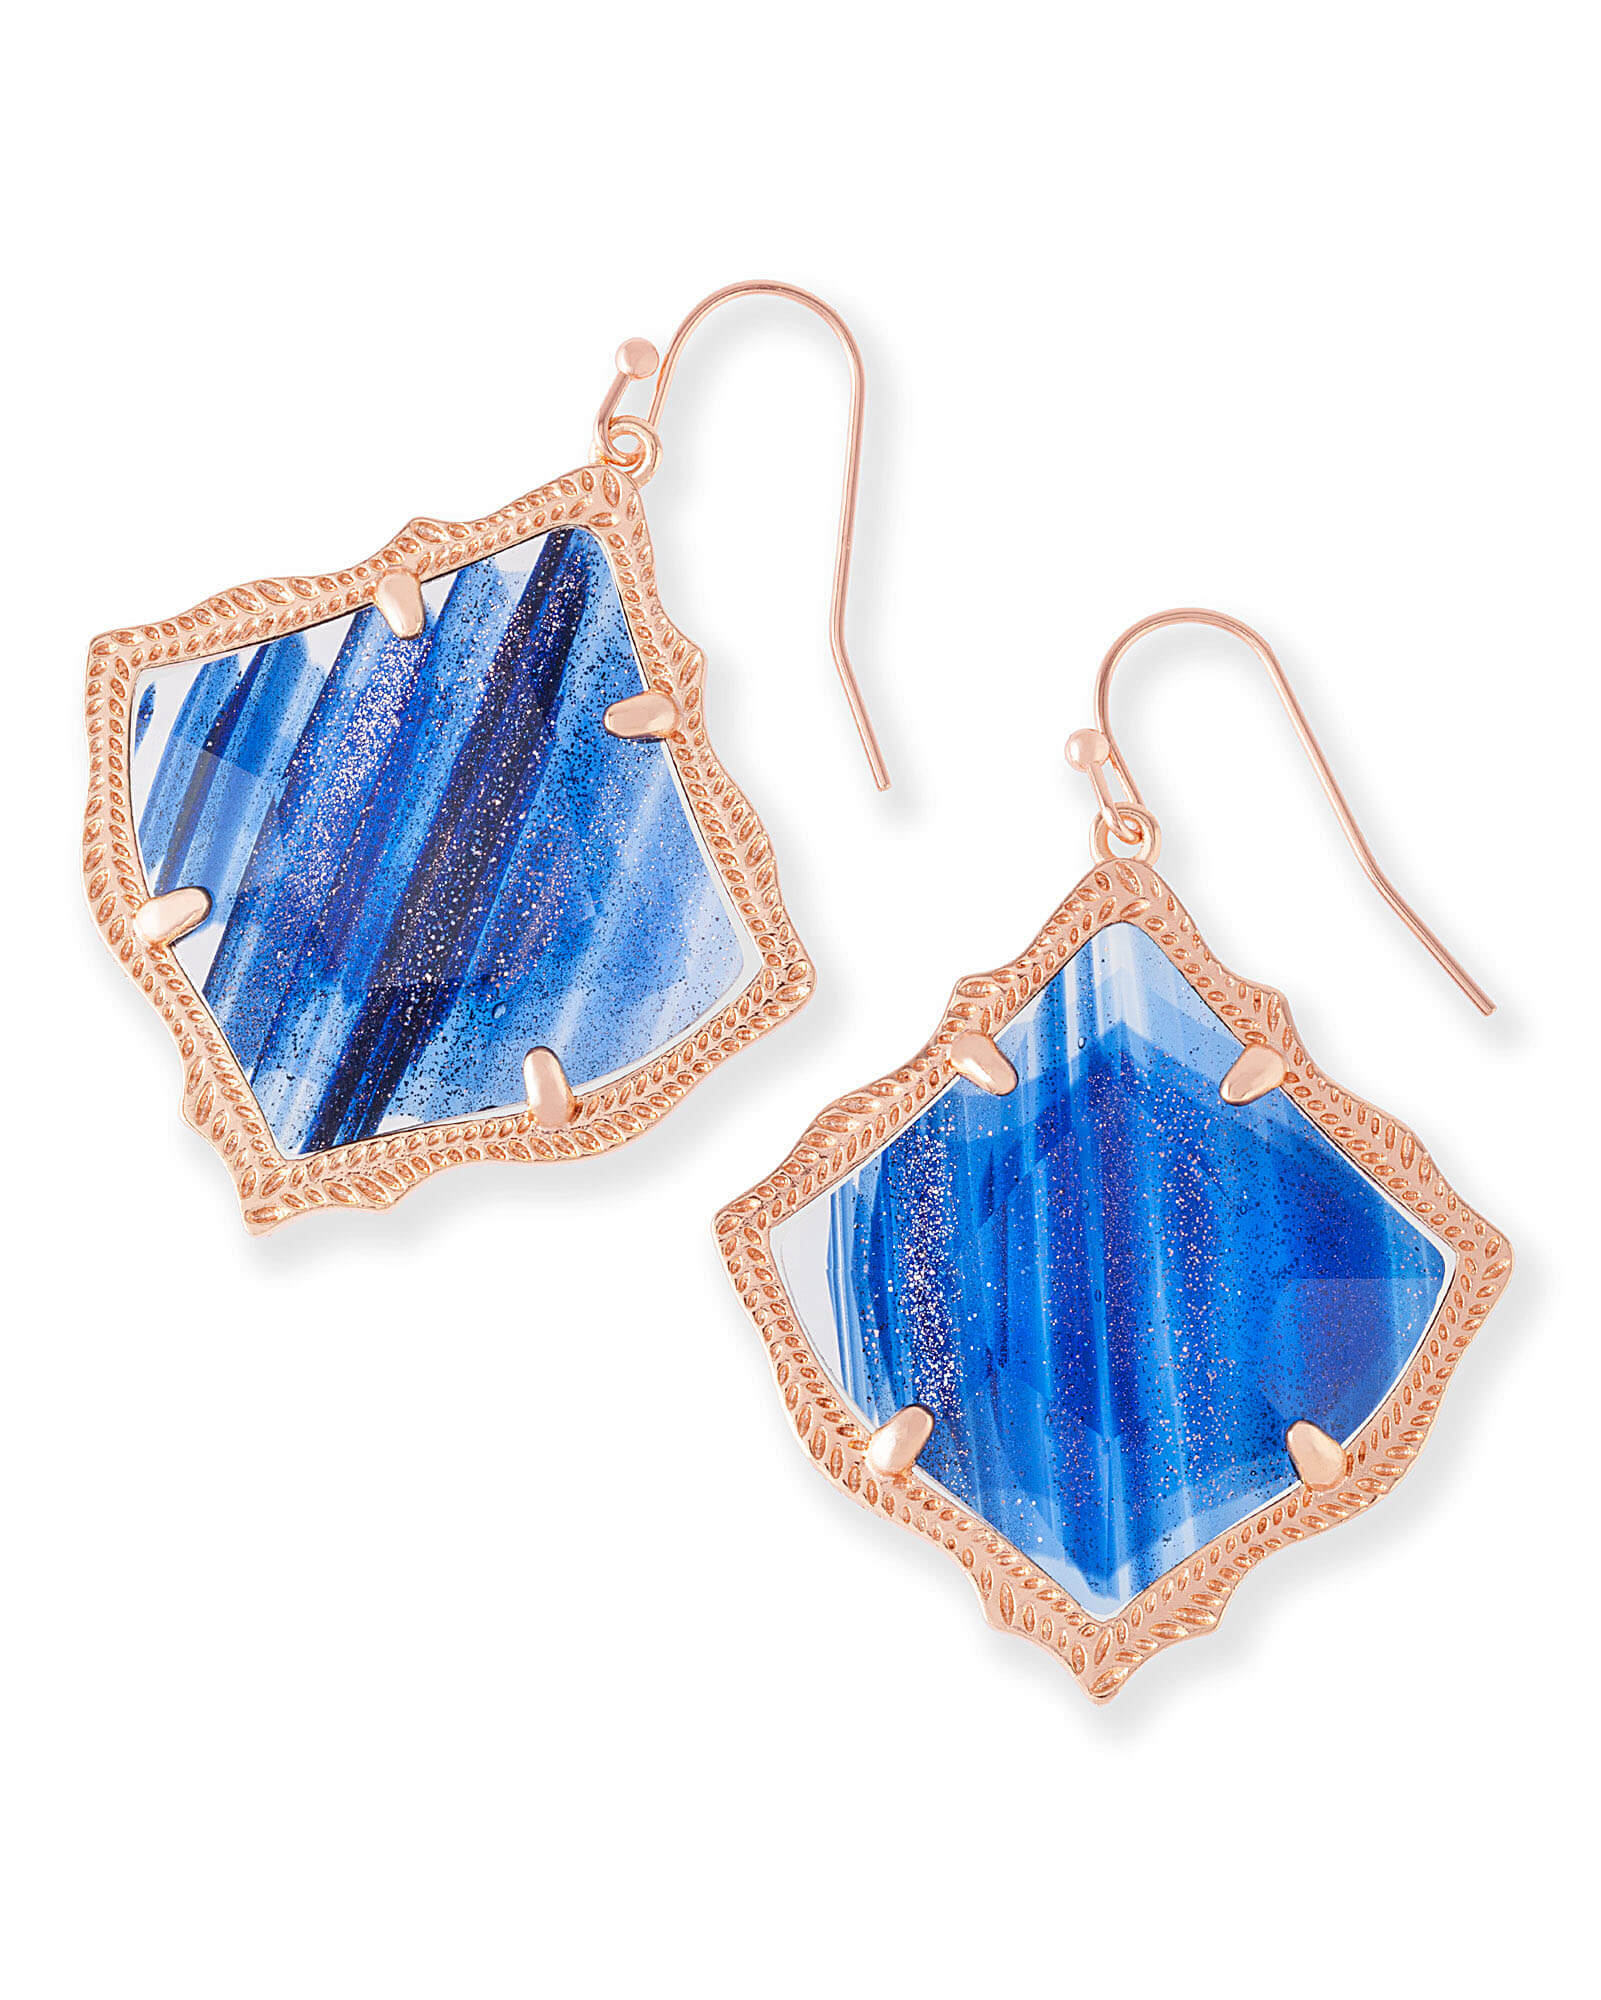 Kirsten Drop Earrings in Navy Dusted Glass